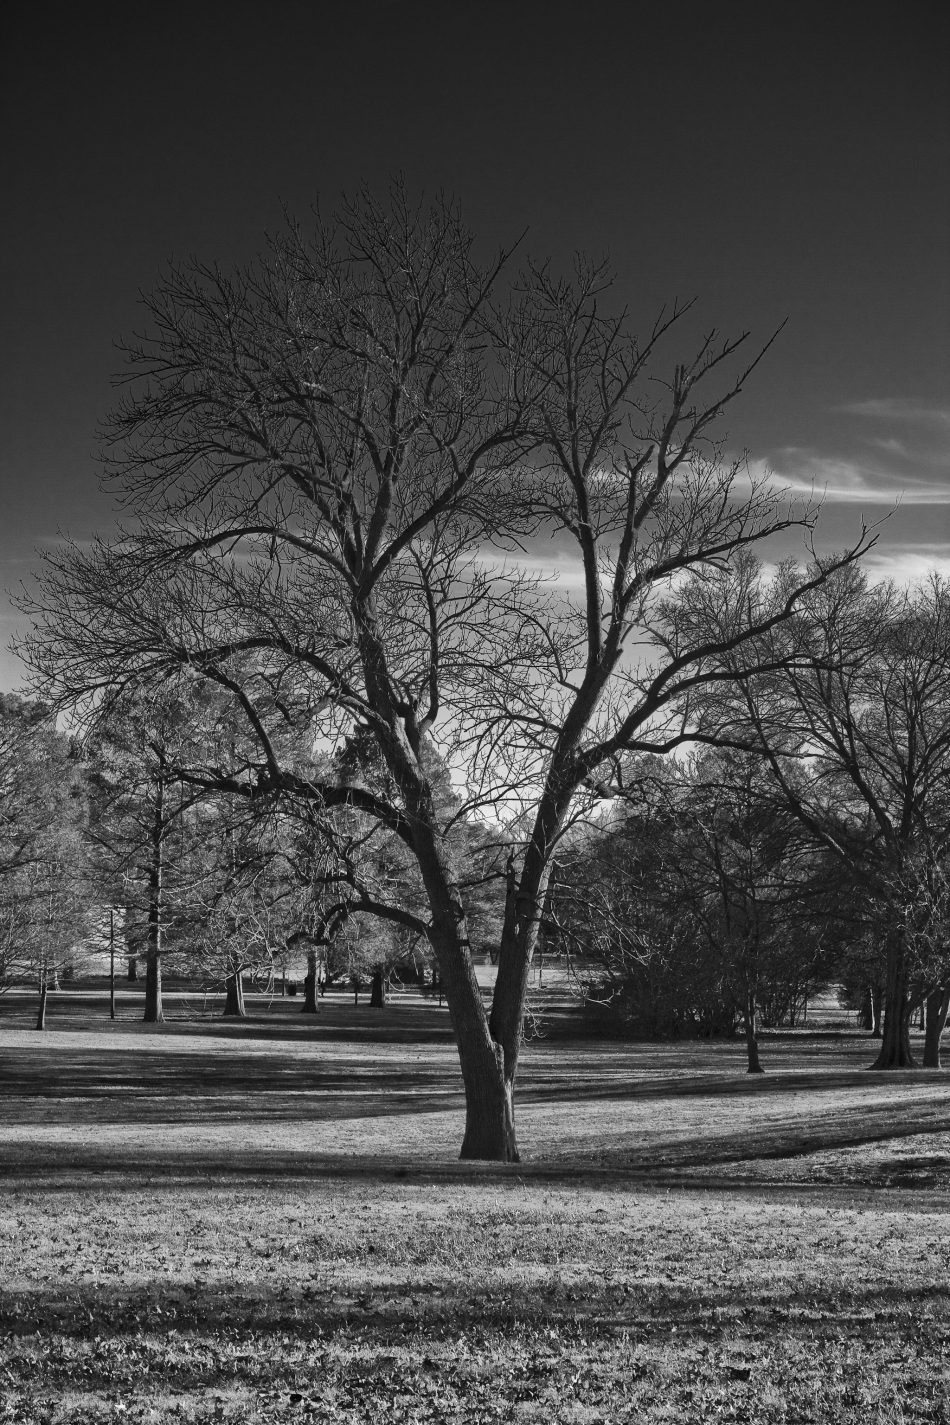 A black and white image of a tree in Francis Park in South St. Louis, MO. Photo by Braden Piper bgpiperphotography.com